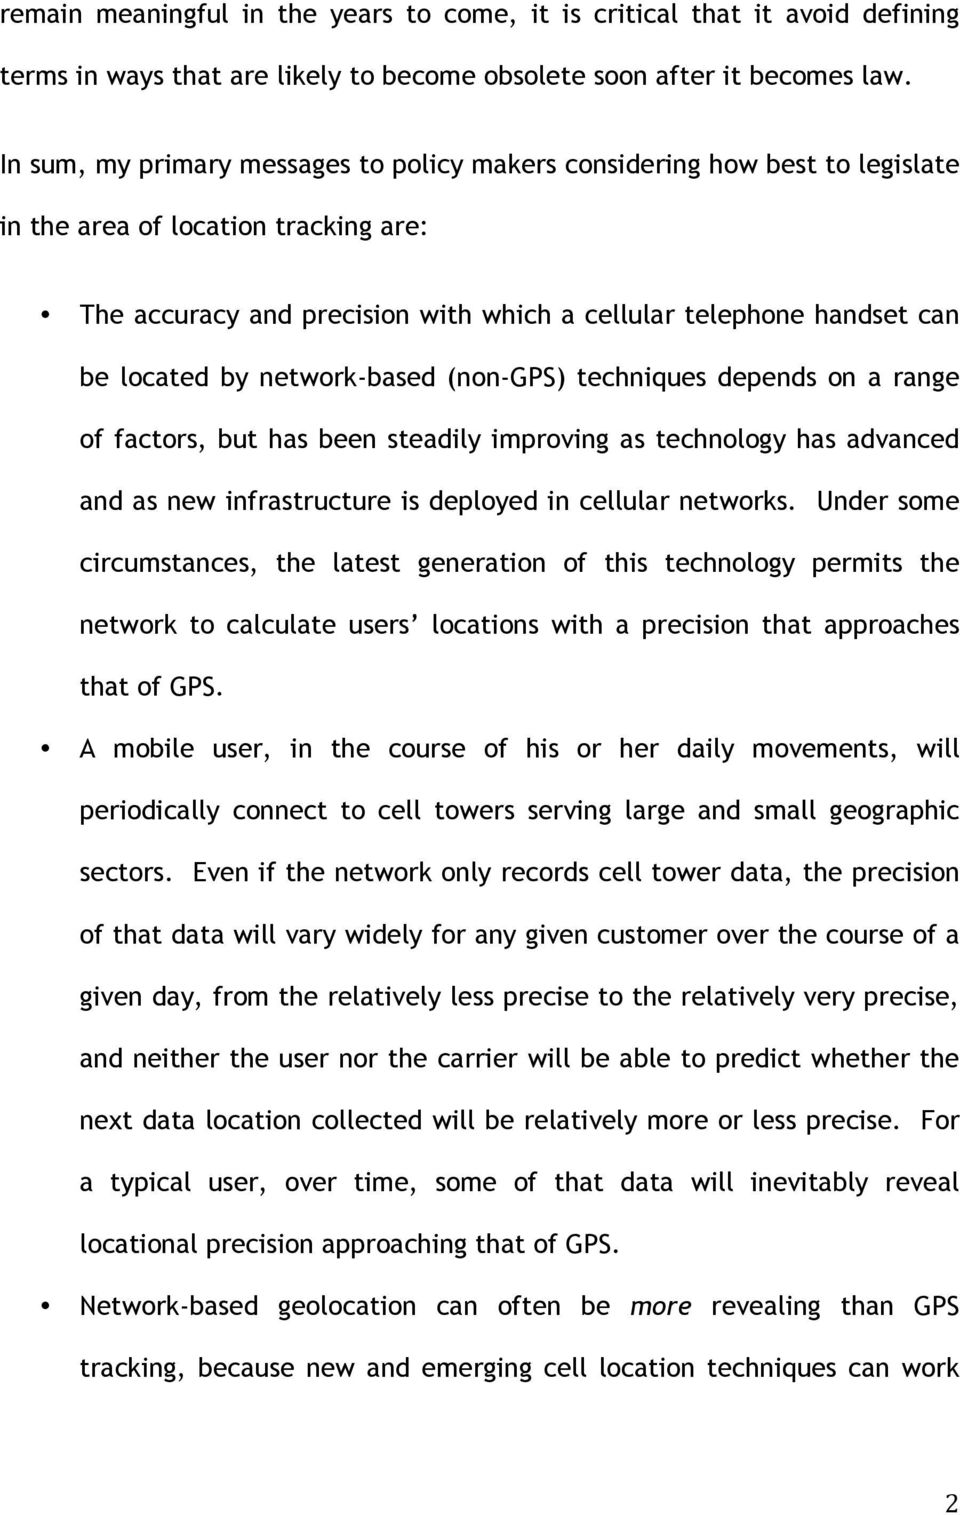 by network-based (non-gps) techniques depends on a range of factors, but has been steadily improving as technology has advanced and as new infrastructure is deployed in cellular networks.